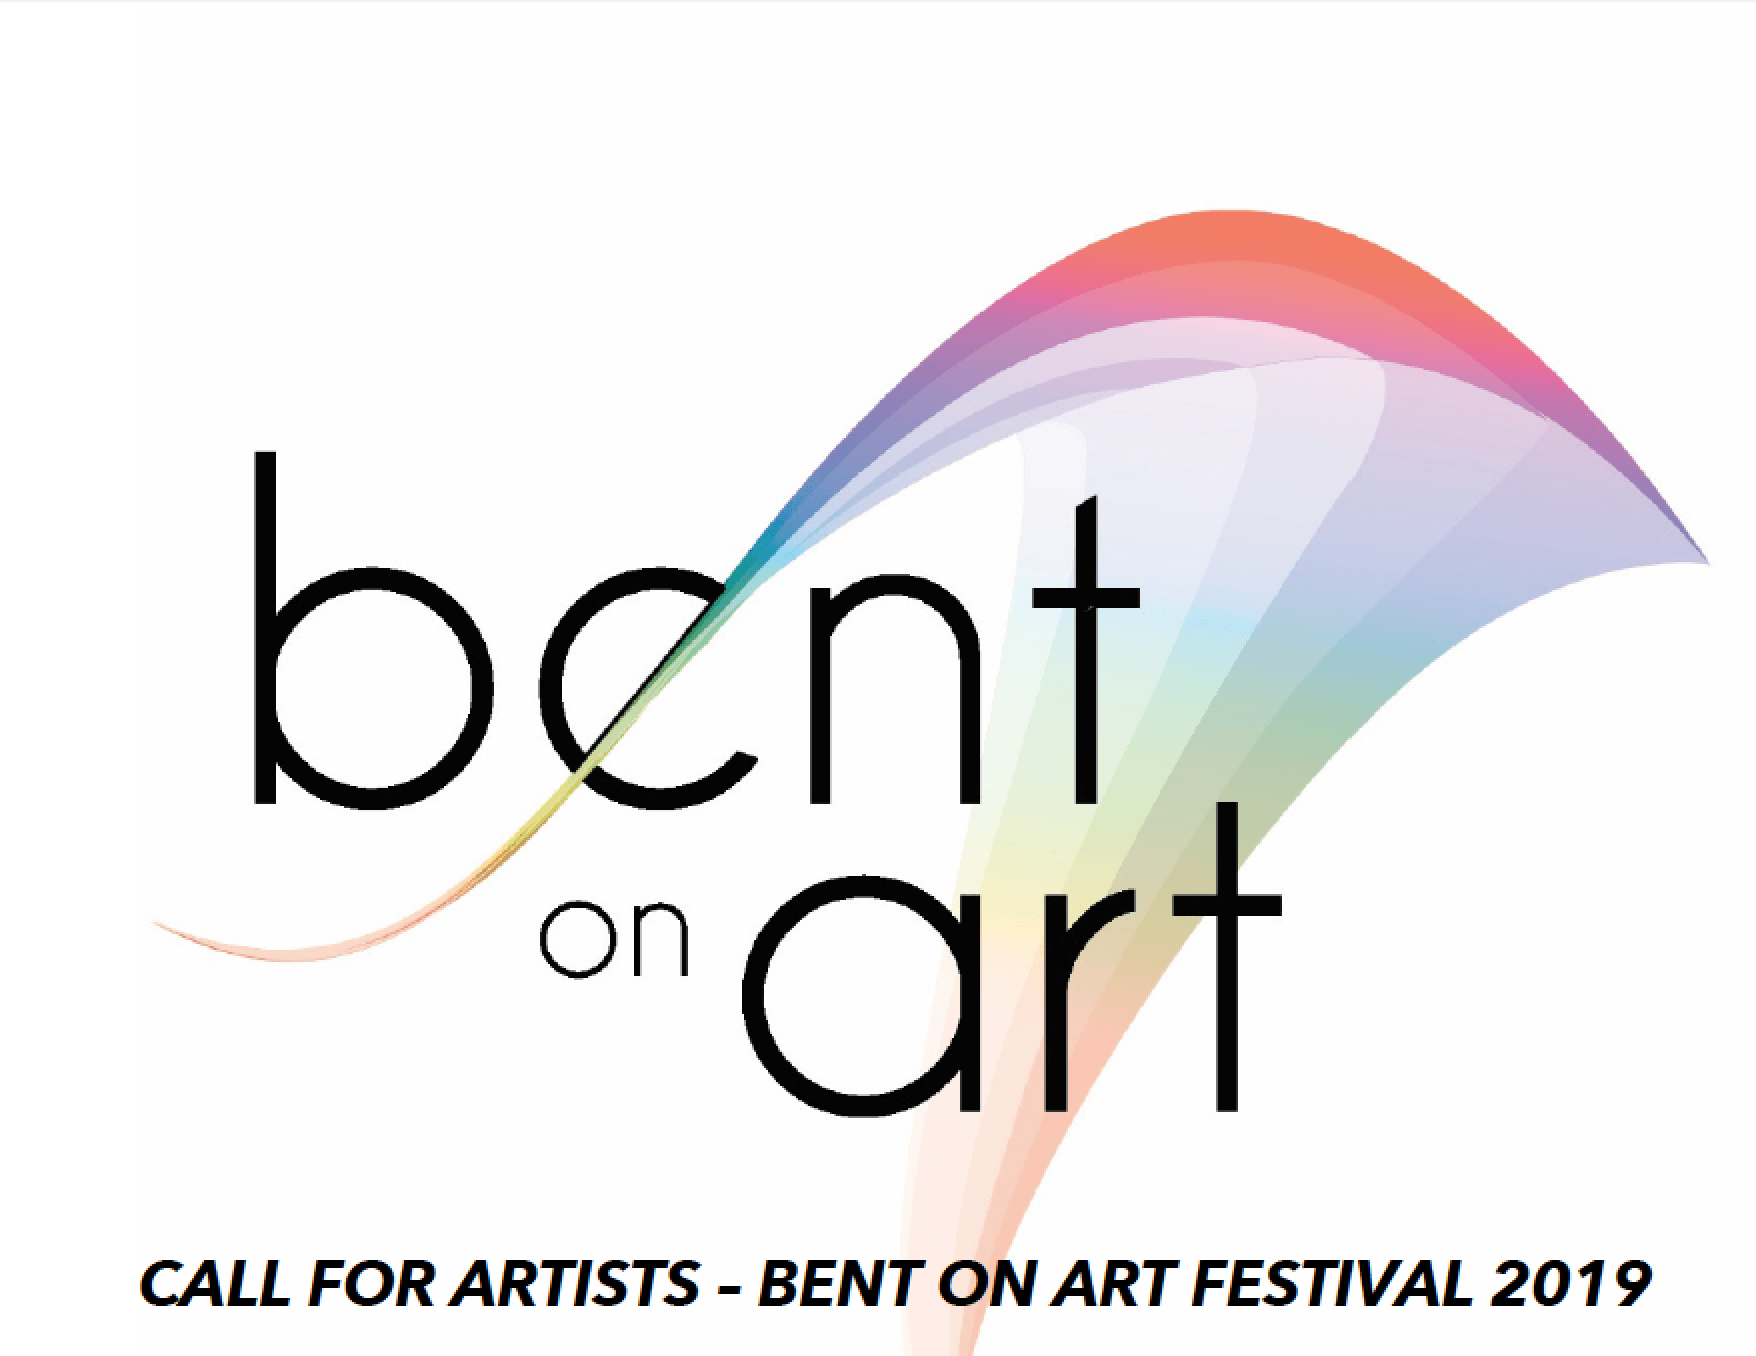 Call for Submissions: Bent on Art Festival